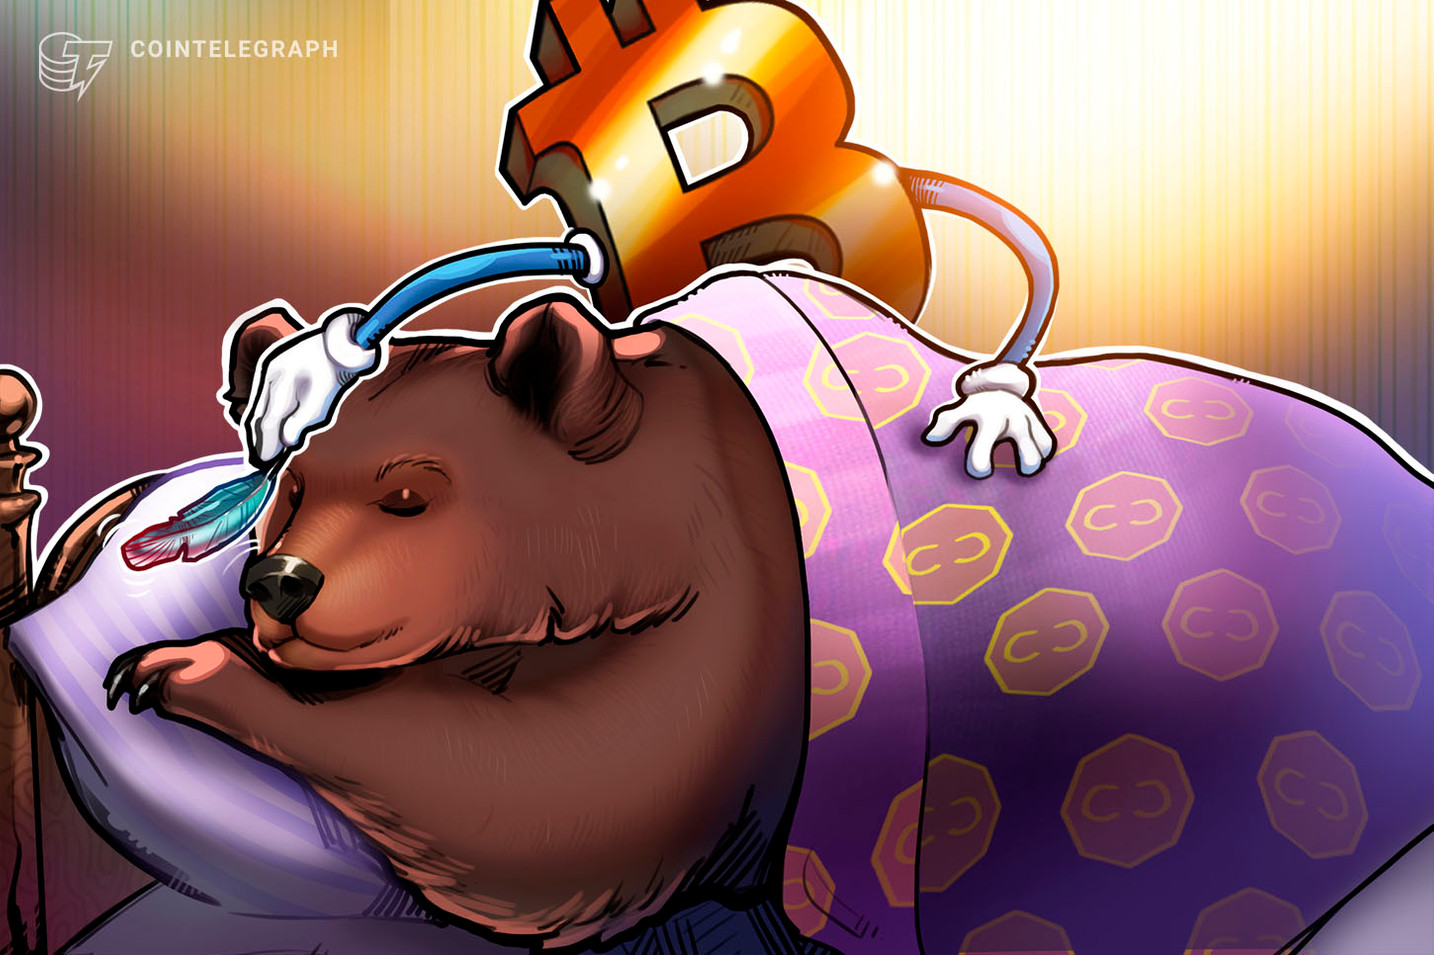 Blockchain Capital Exec: Bear Markets 'Do Bear Things,' but BTC Has 'Gigantic' Potential